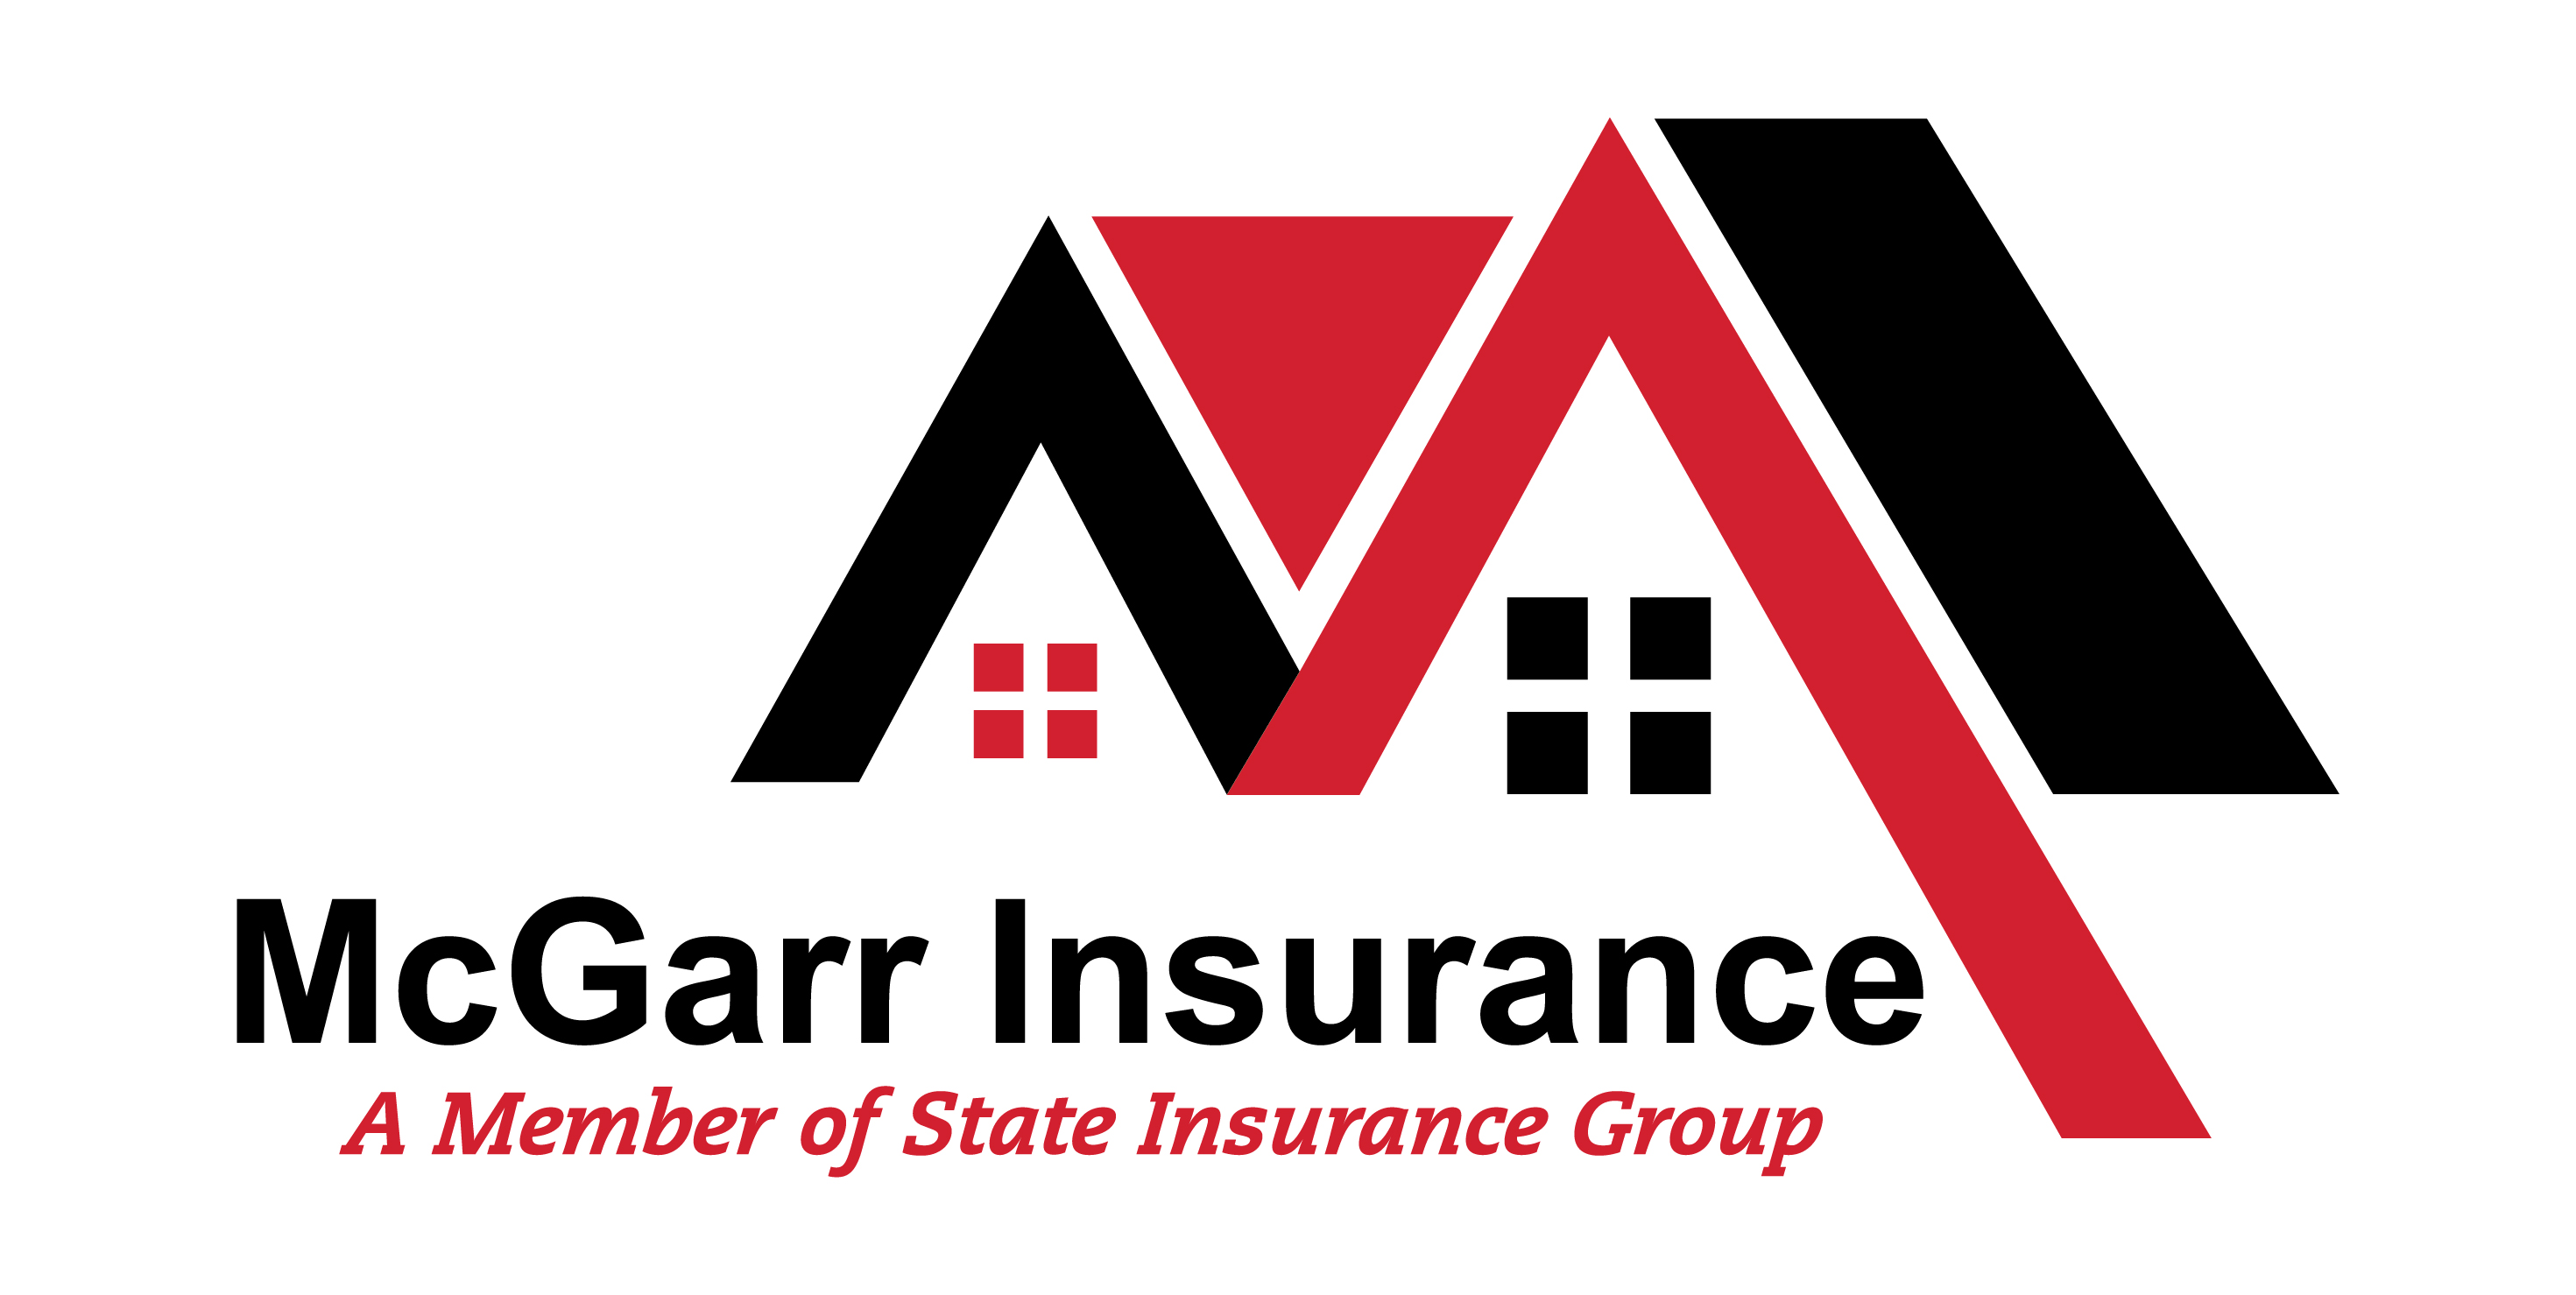 McGarr Insurance Port Saint Lucie, FL